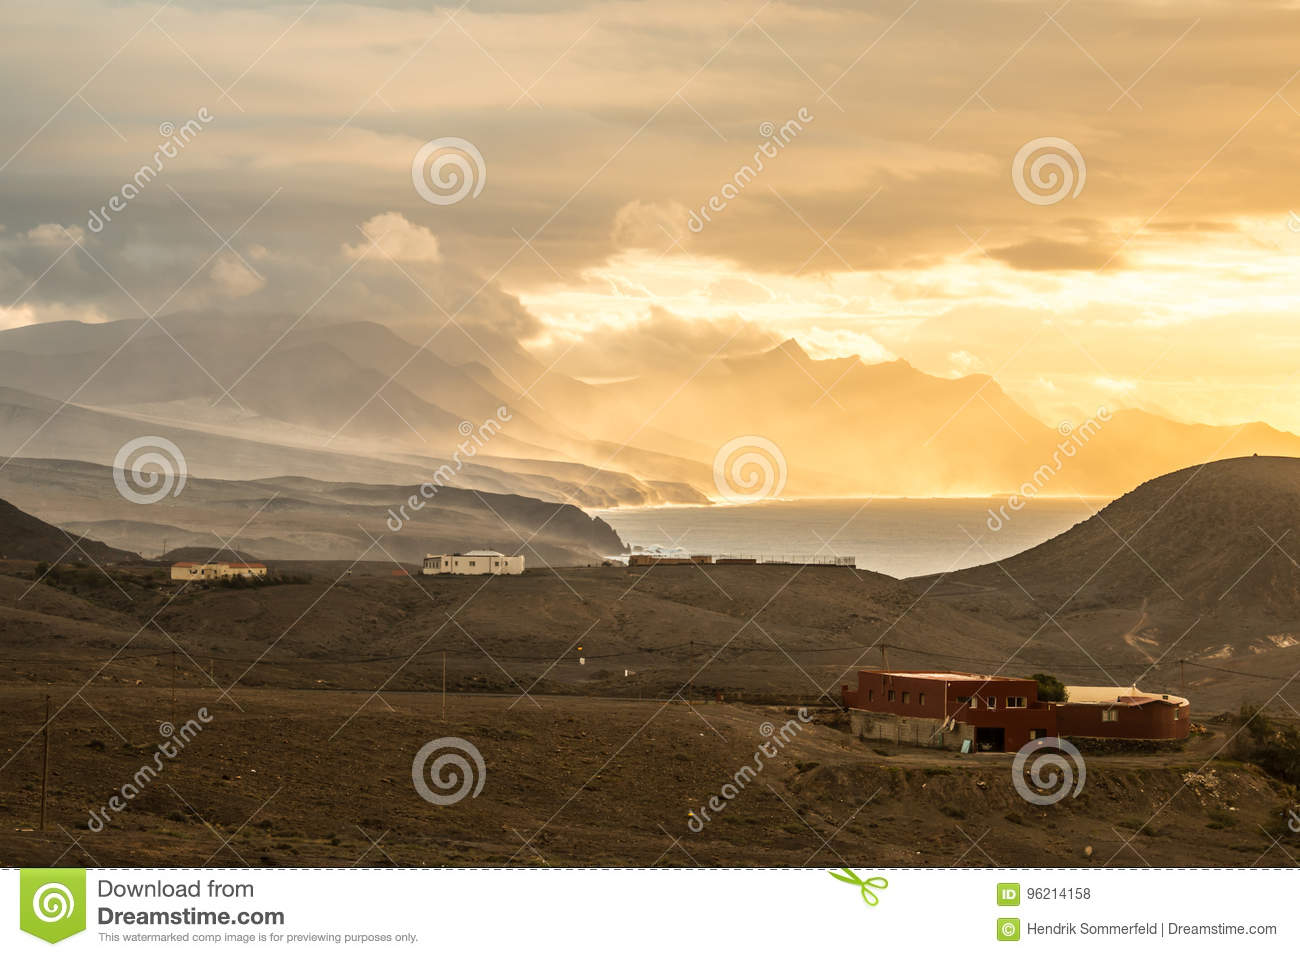 Ocean sunset scenery with mountainous coastline and epic light atmosphere